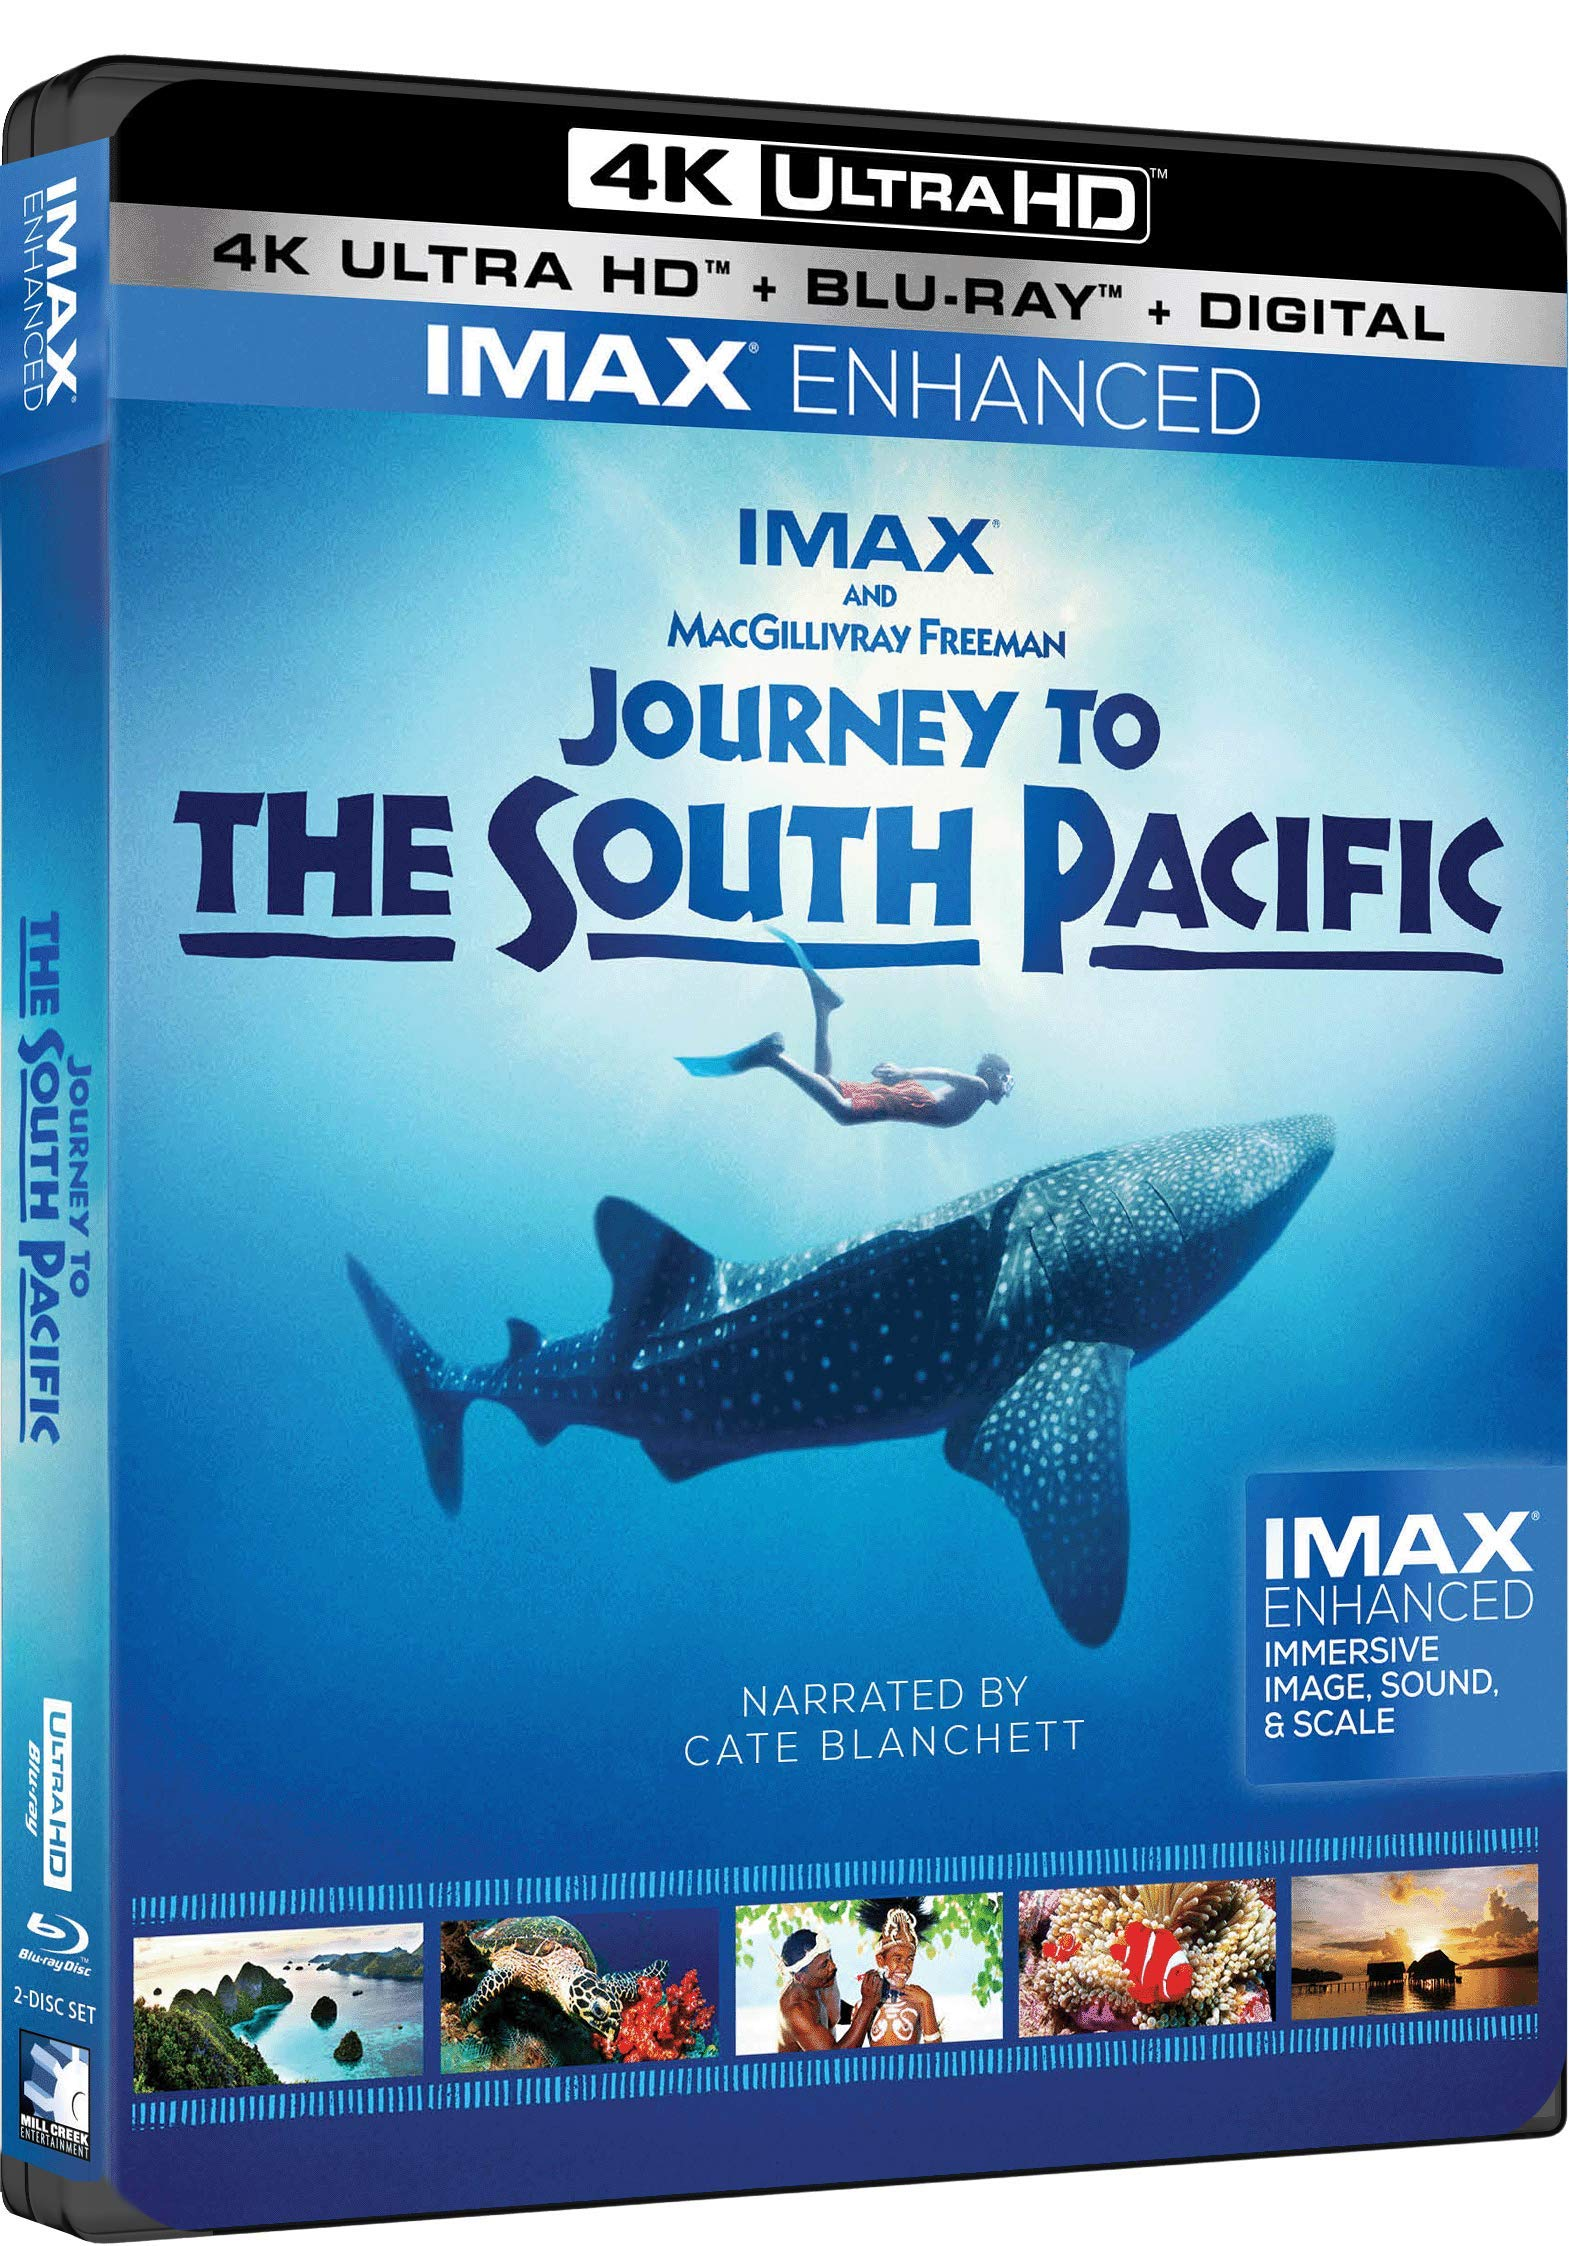 4K Blu-ray : Journey To The South Pacific (With Blu-ray, 4K Mastering, 2 Pack)